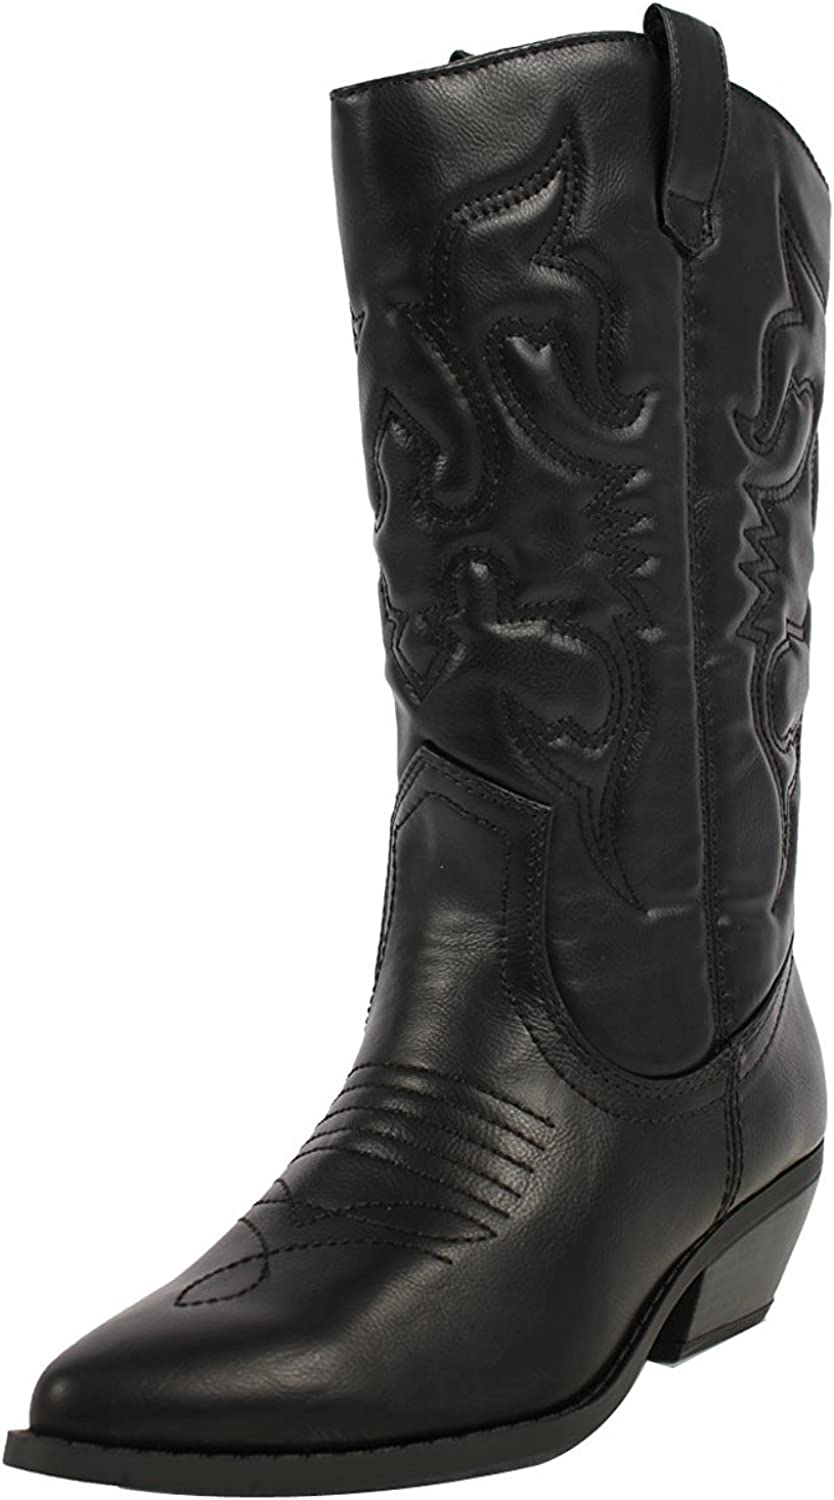 Soda Women's Red Reno Western Cowboy Pointed Toe Knee High Pull On Tabs Boots Black